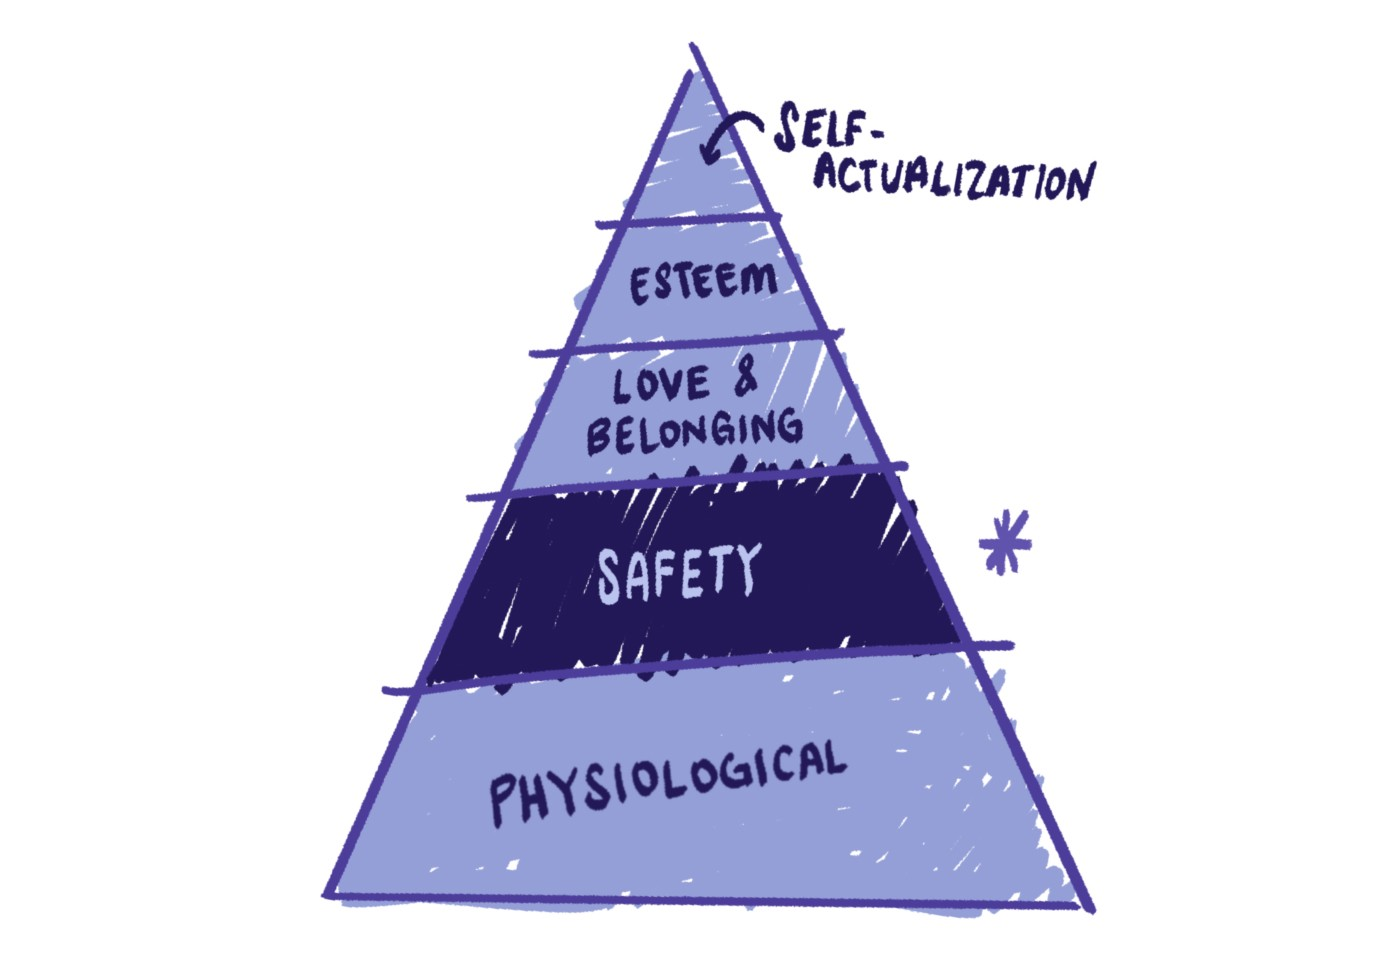 A triangle includes five lateral sections. At the base, psychological. Above it, safety, love and belonging, esteem, and self-actualization.